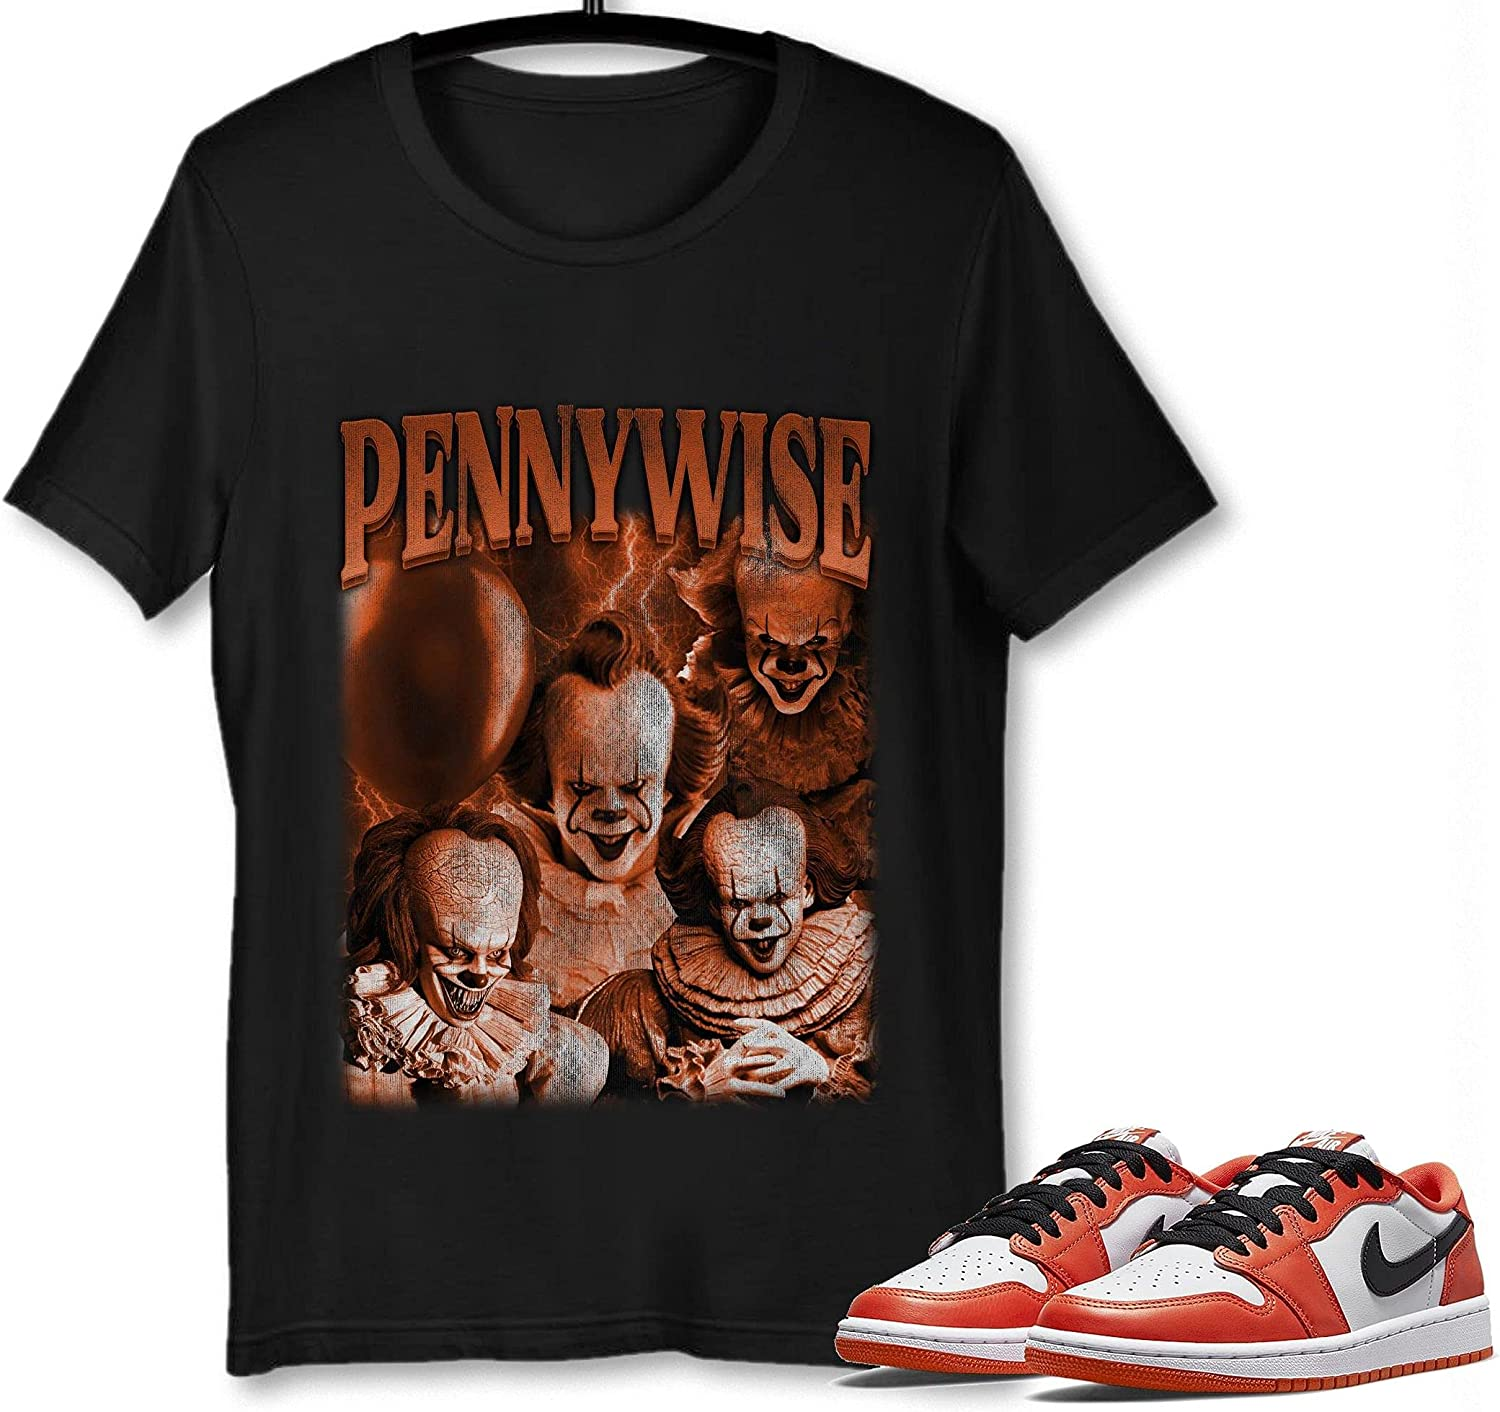 #Pennywise T-Shirt to Match Jordan 1 Low Recommended OG Sneaker Starfish Denver Mall Snk